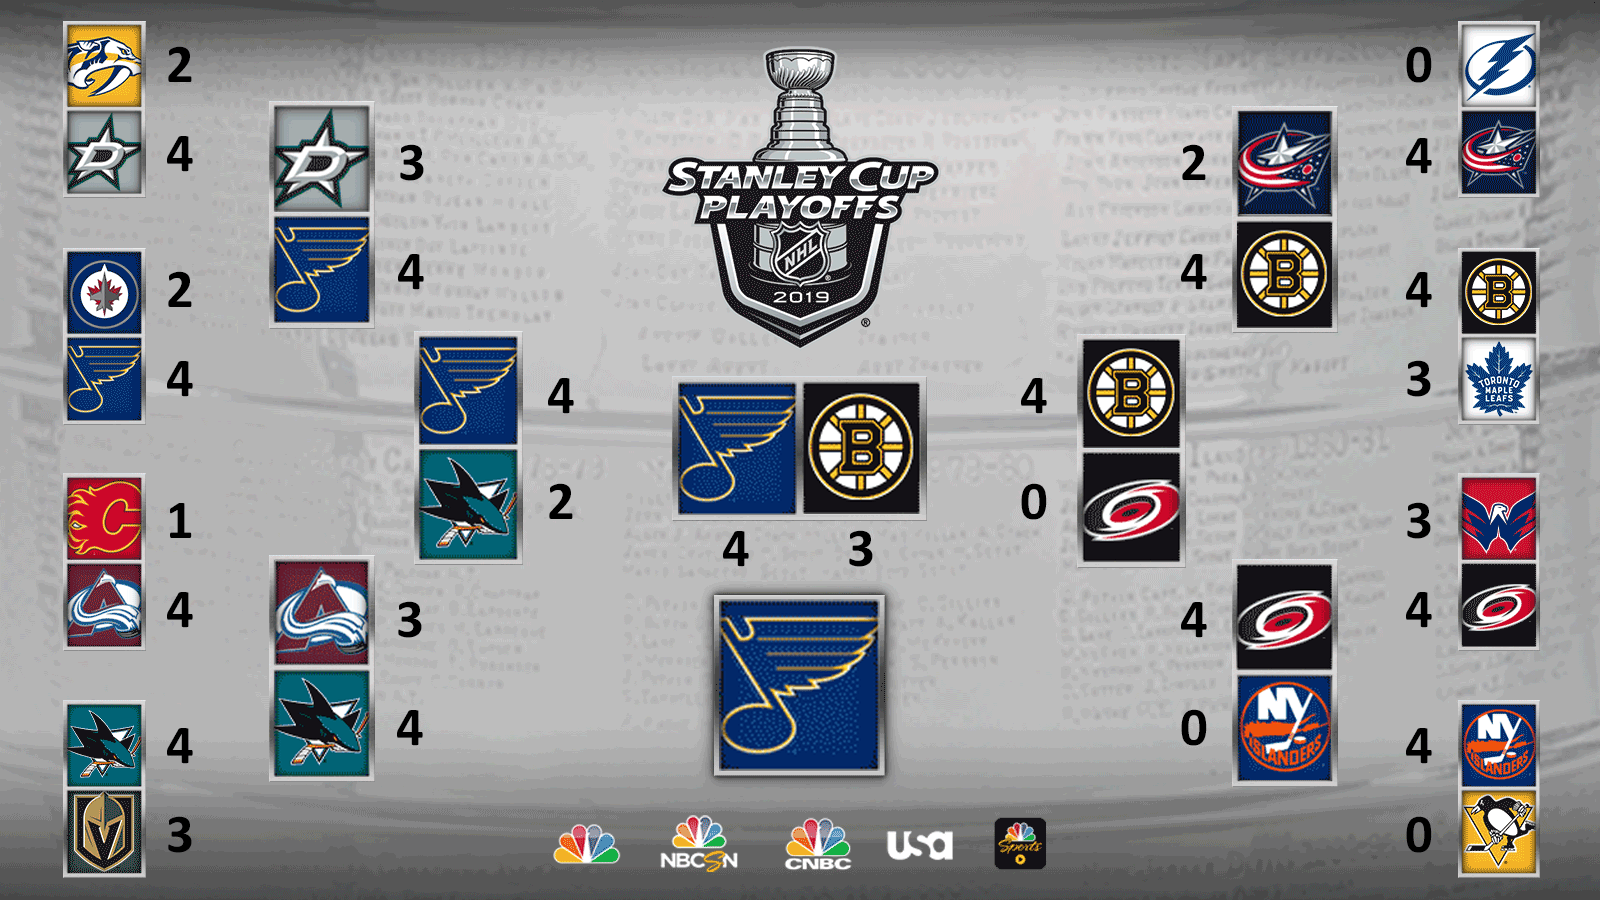 Stanley Cup Finals Schedule 2020 NHL Playoffs 2019: Watch Stanley Cup Final Highlights